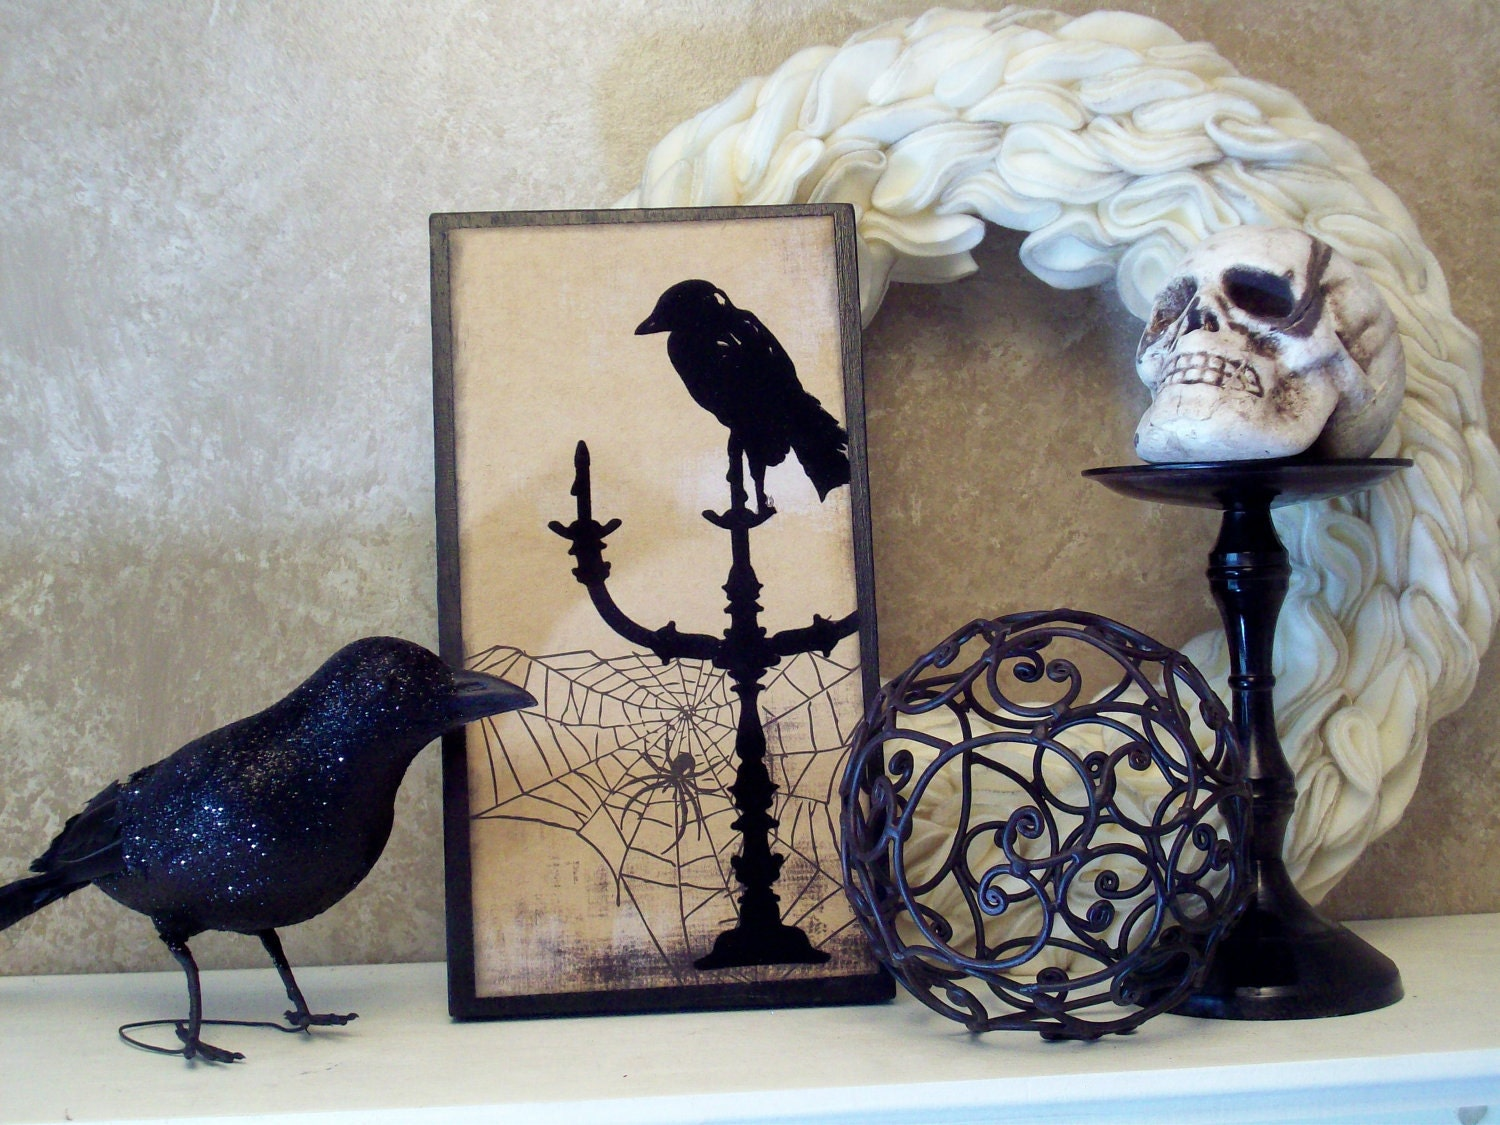 The Raven decorative wood board